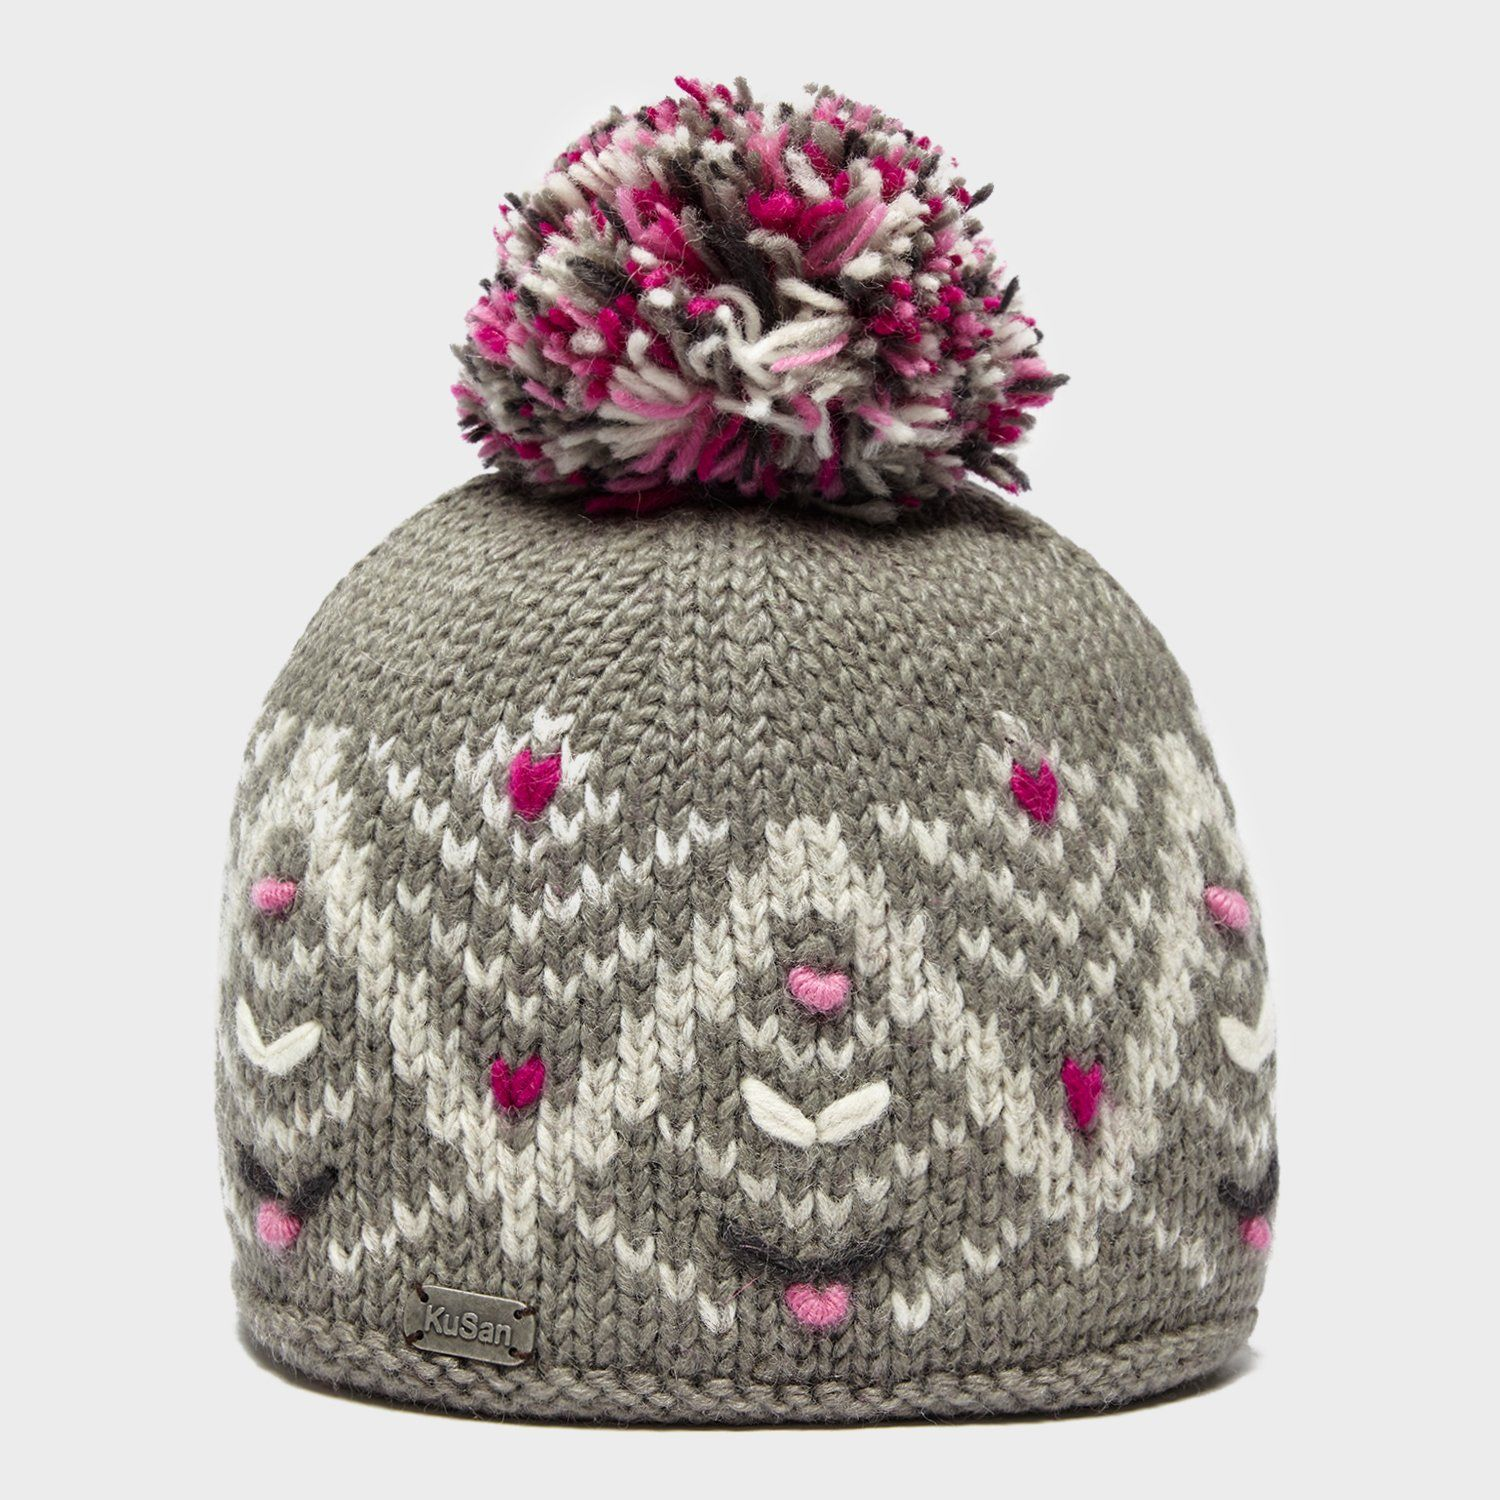 KUSAN Women's Pretty Bobble Hat